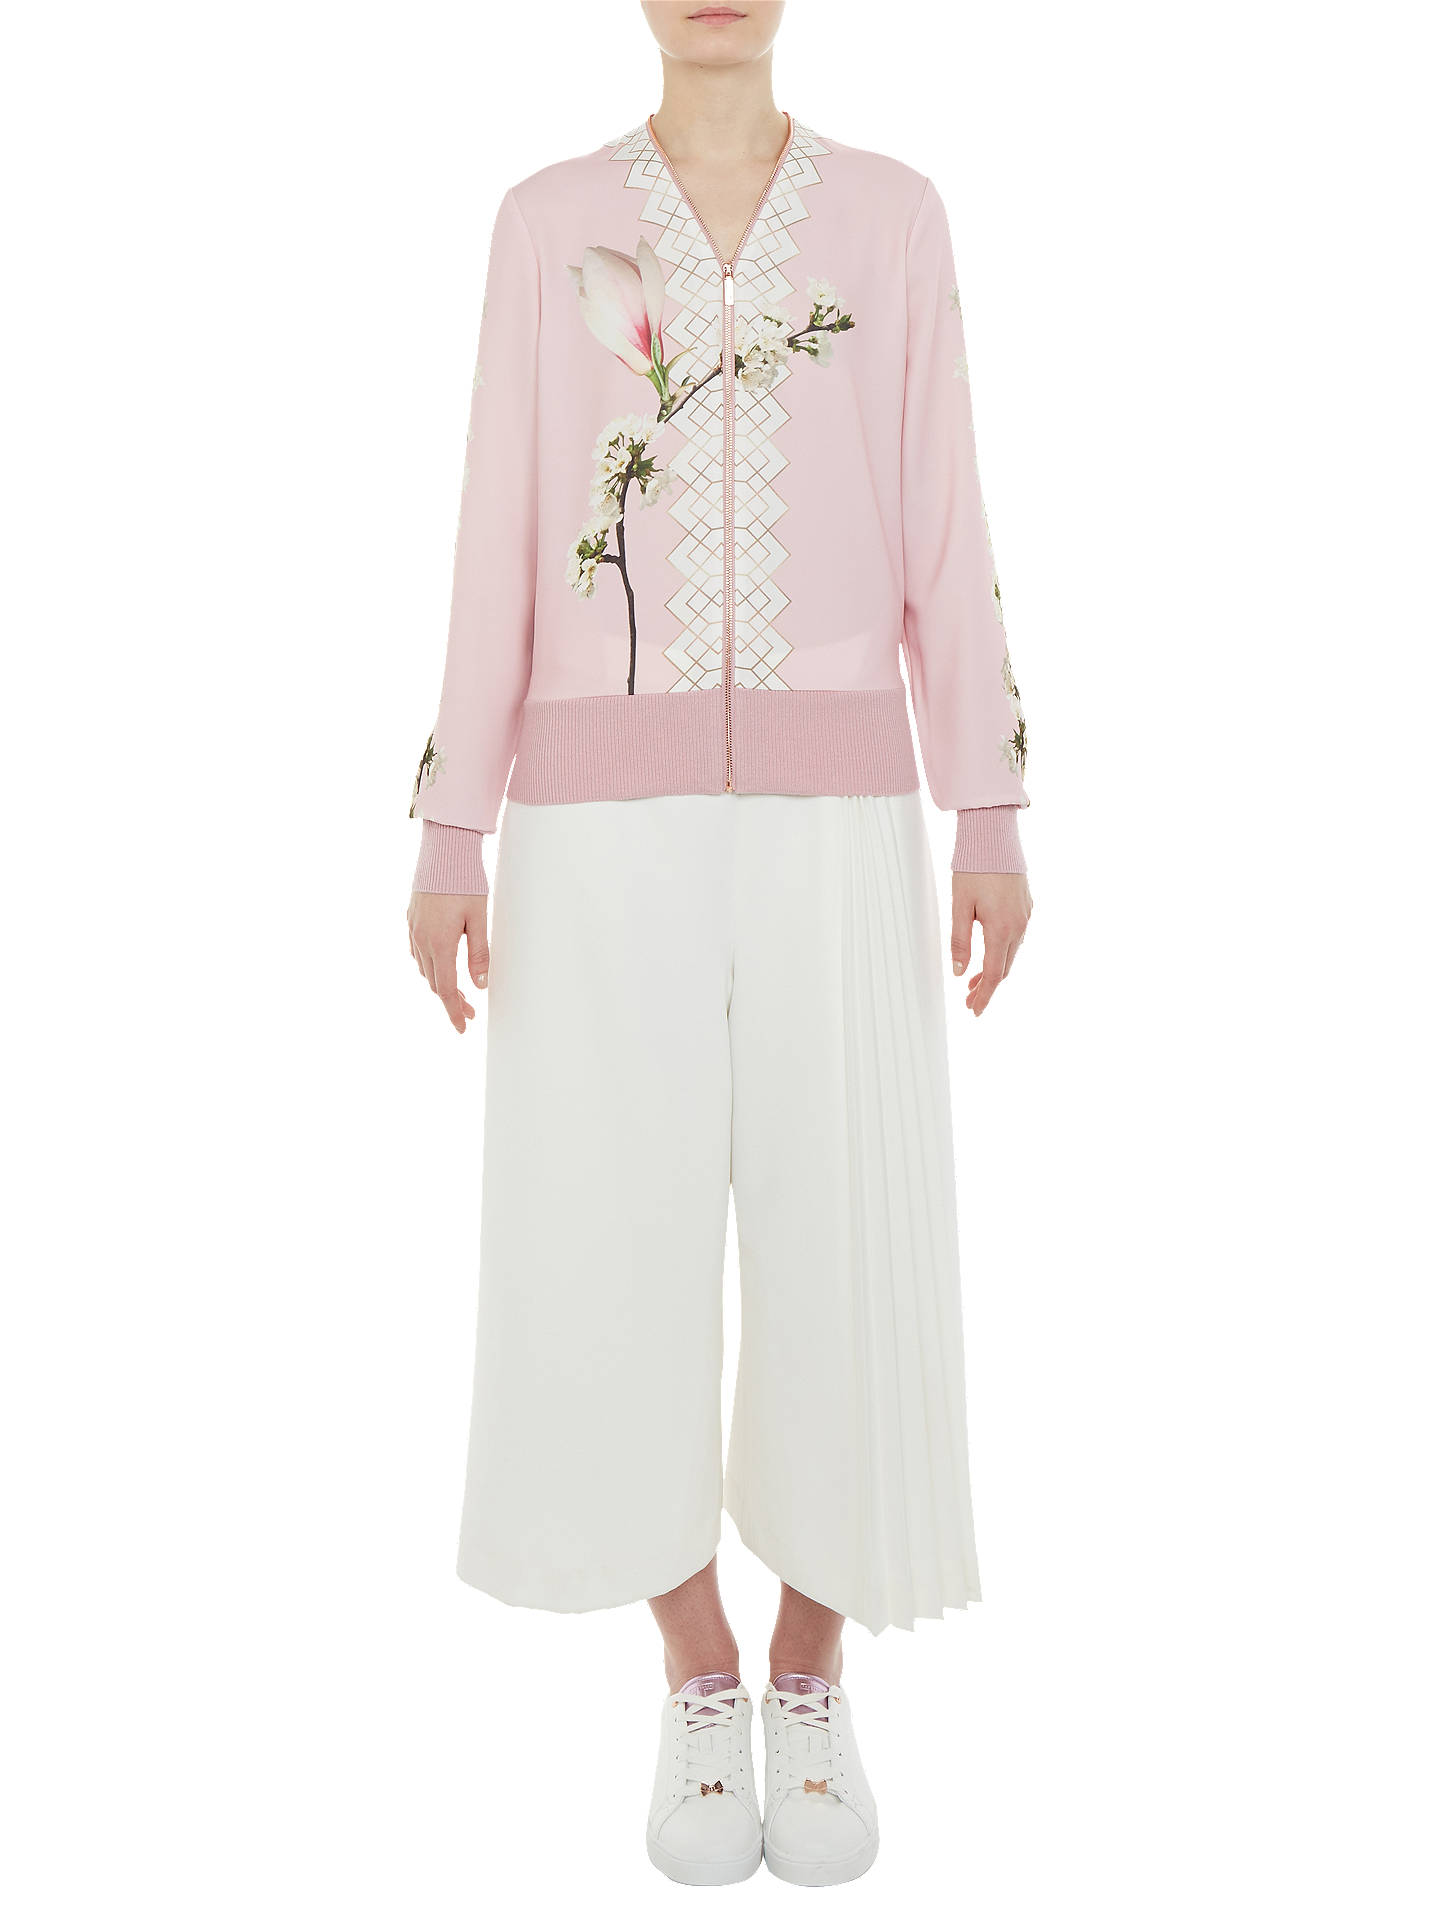 BuyTed Baker Harmony Print Zipped Cardigan, Pale Pink, 0 Online at johnlewis.com